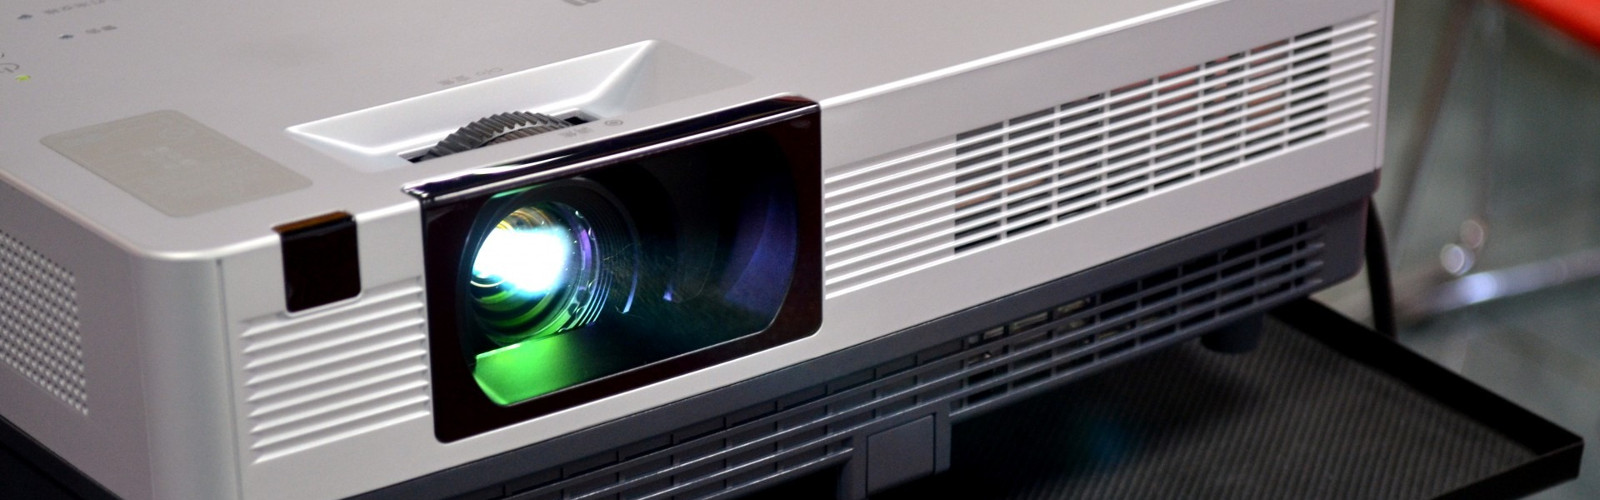 Epson and Hitachi Projectors for Sales, Service and Rental in Chennai